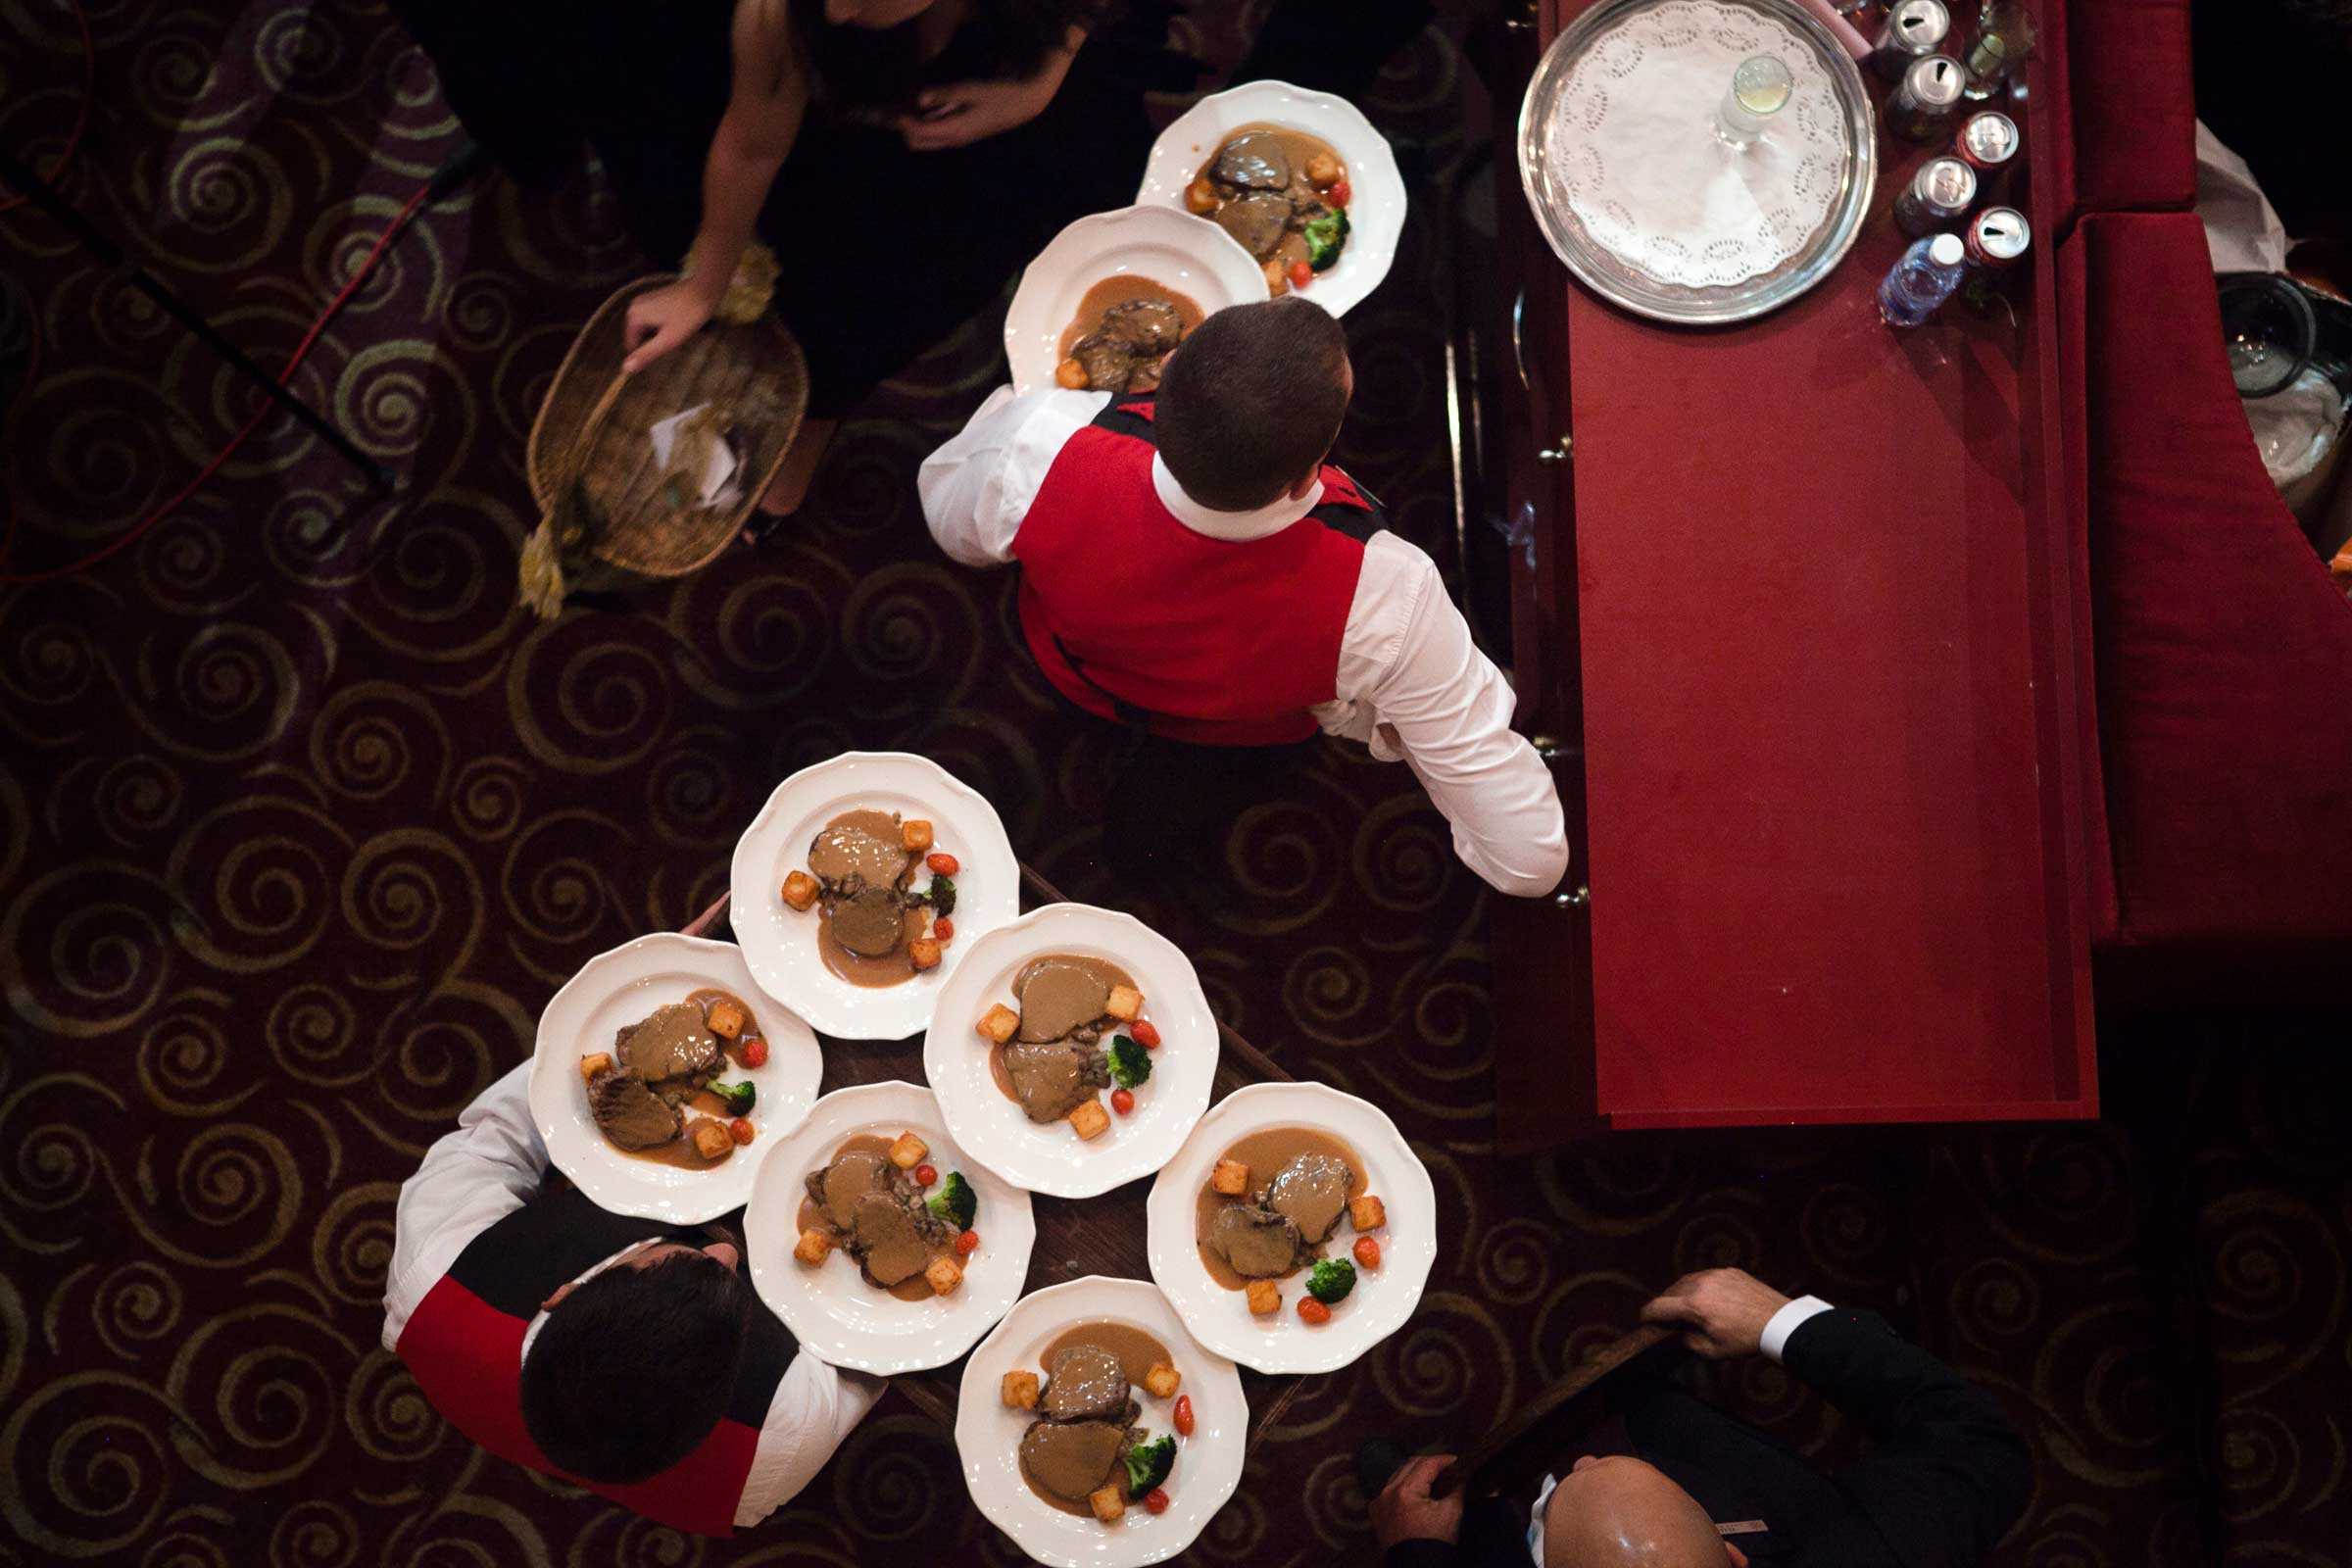 Dinner of beef steak is served for 600 people, tickets for the Ball ranged from $150 or $200.